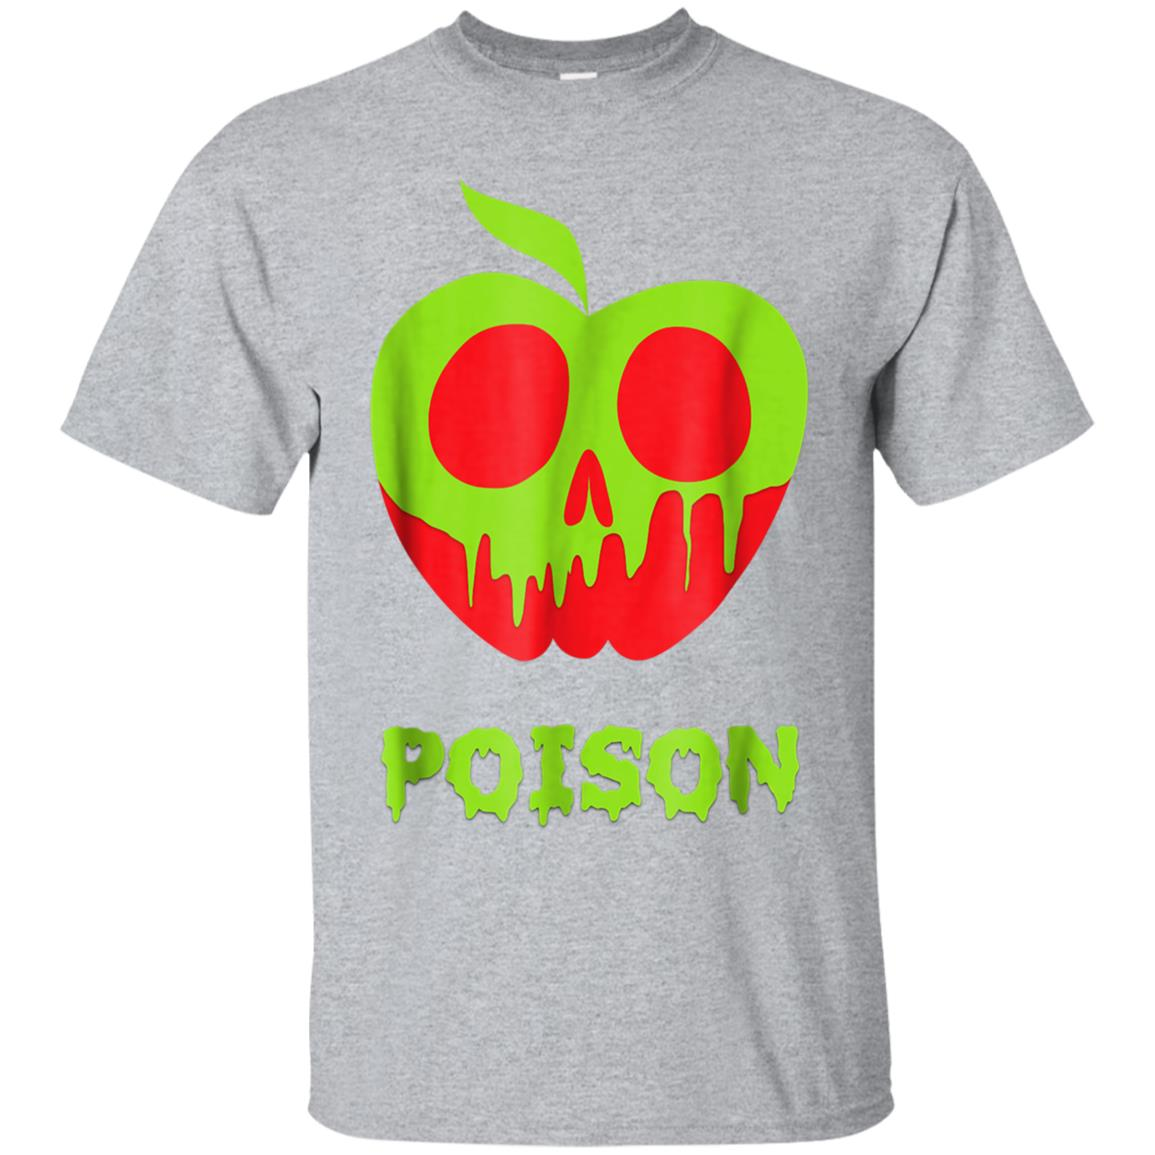 Poison apple T-shirt 99promocode